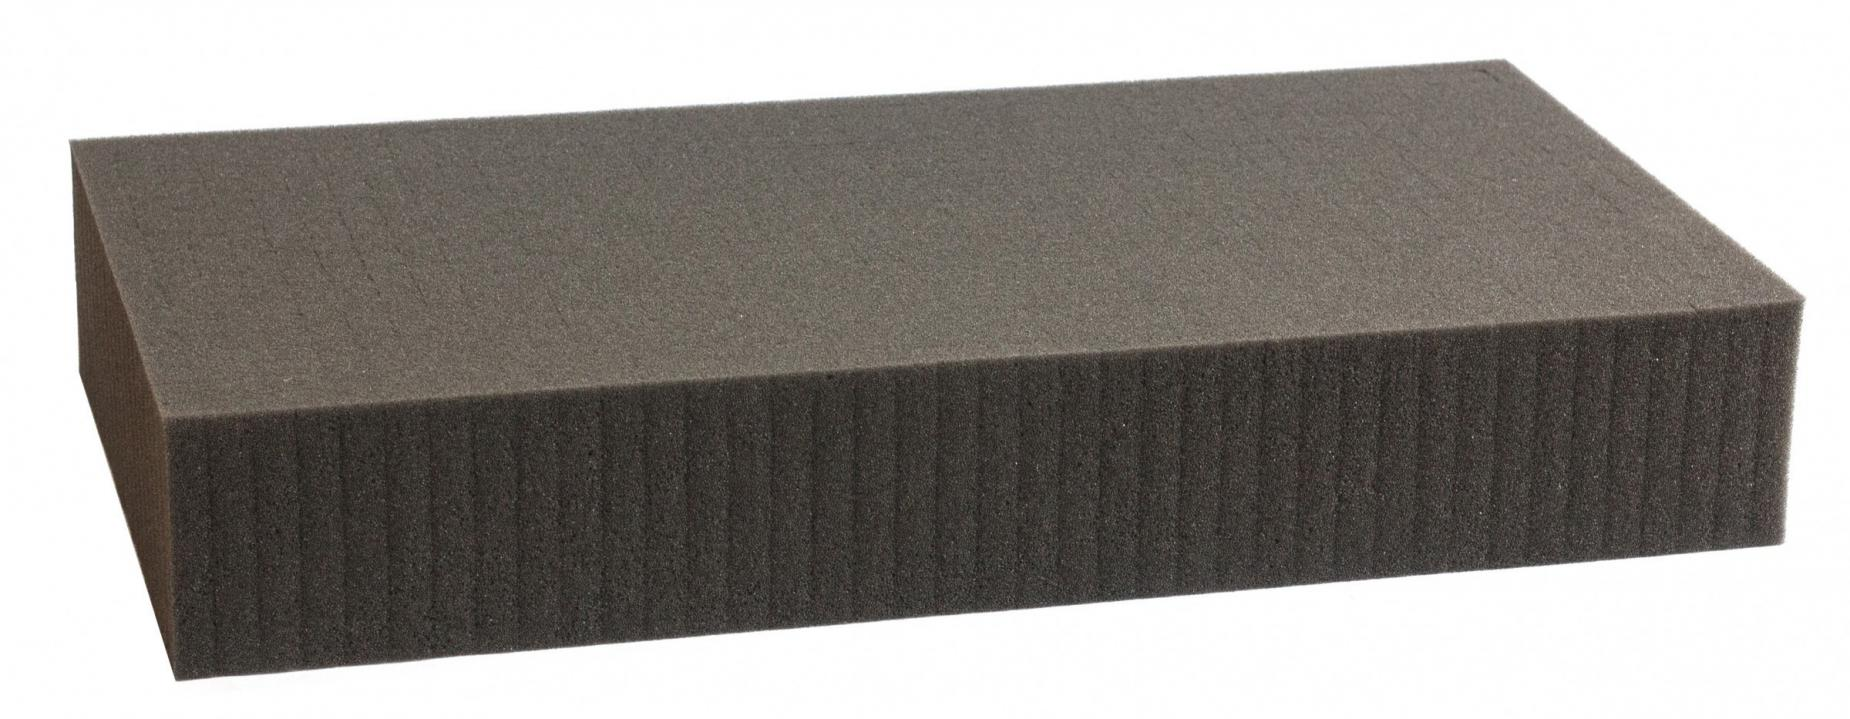 550 mm x 350 mm x 80 mm - Raster 15 mm - Pick and Pluck / Pre-Cubed foam tray